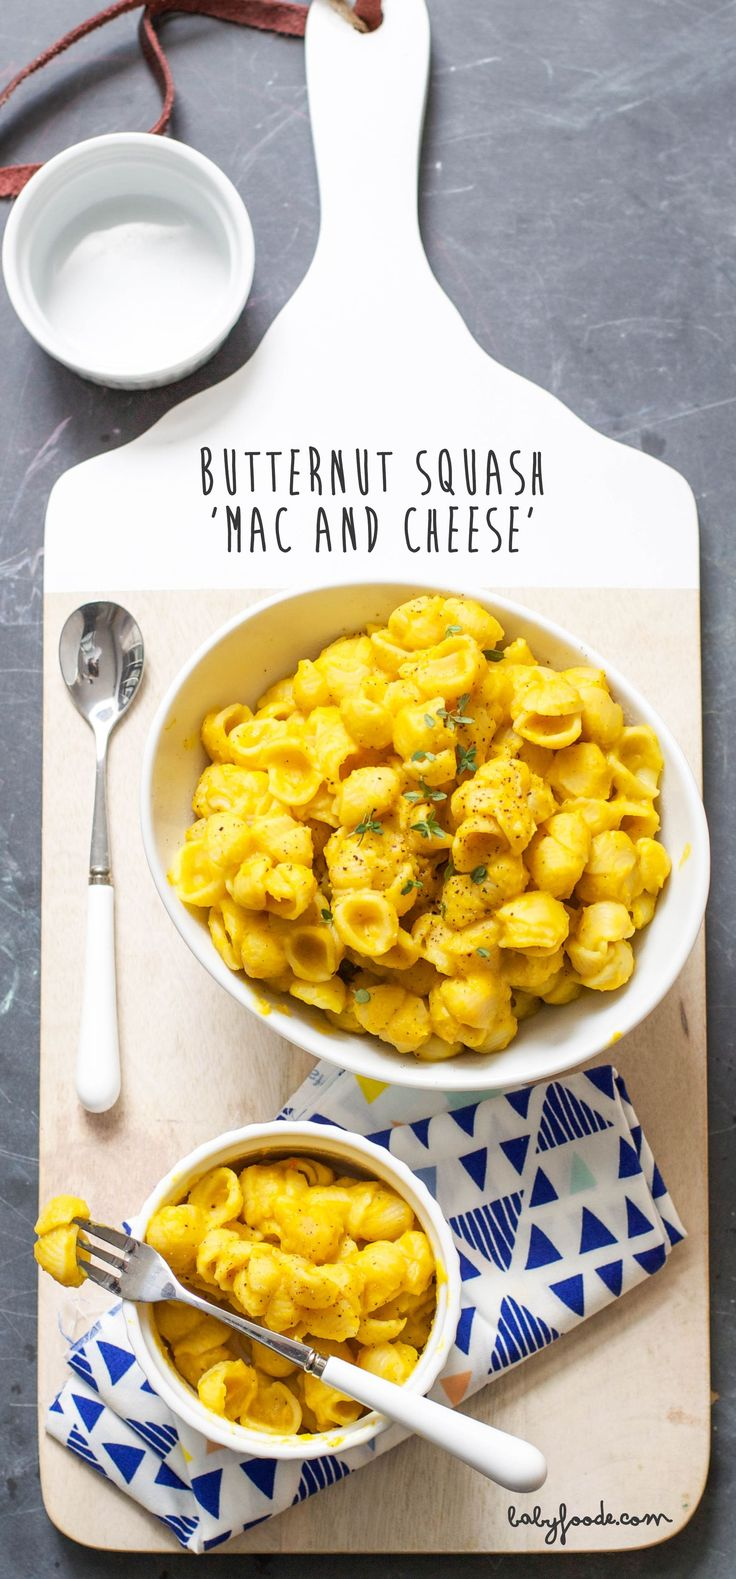 Butternut Squash 'Mac and Cheese' for Toddler — Baby FoodE | organic baby food recipes to inspire adventurous eating